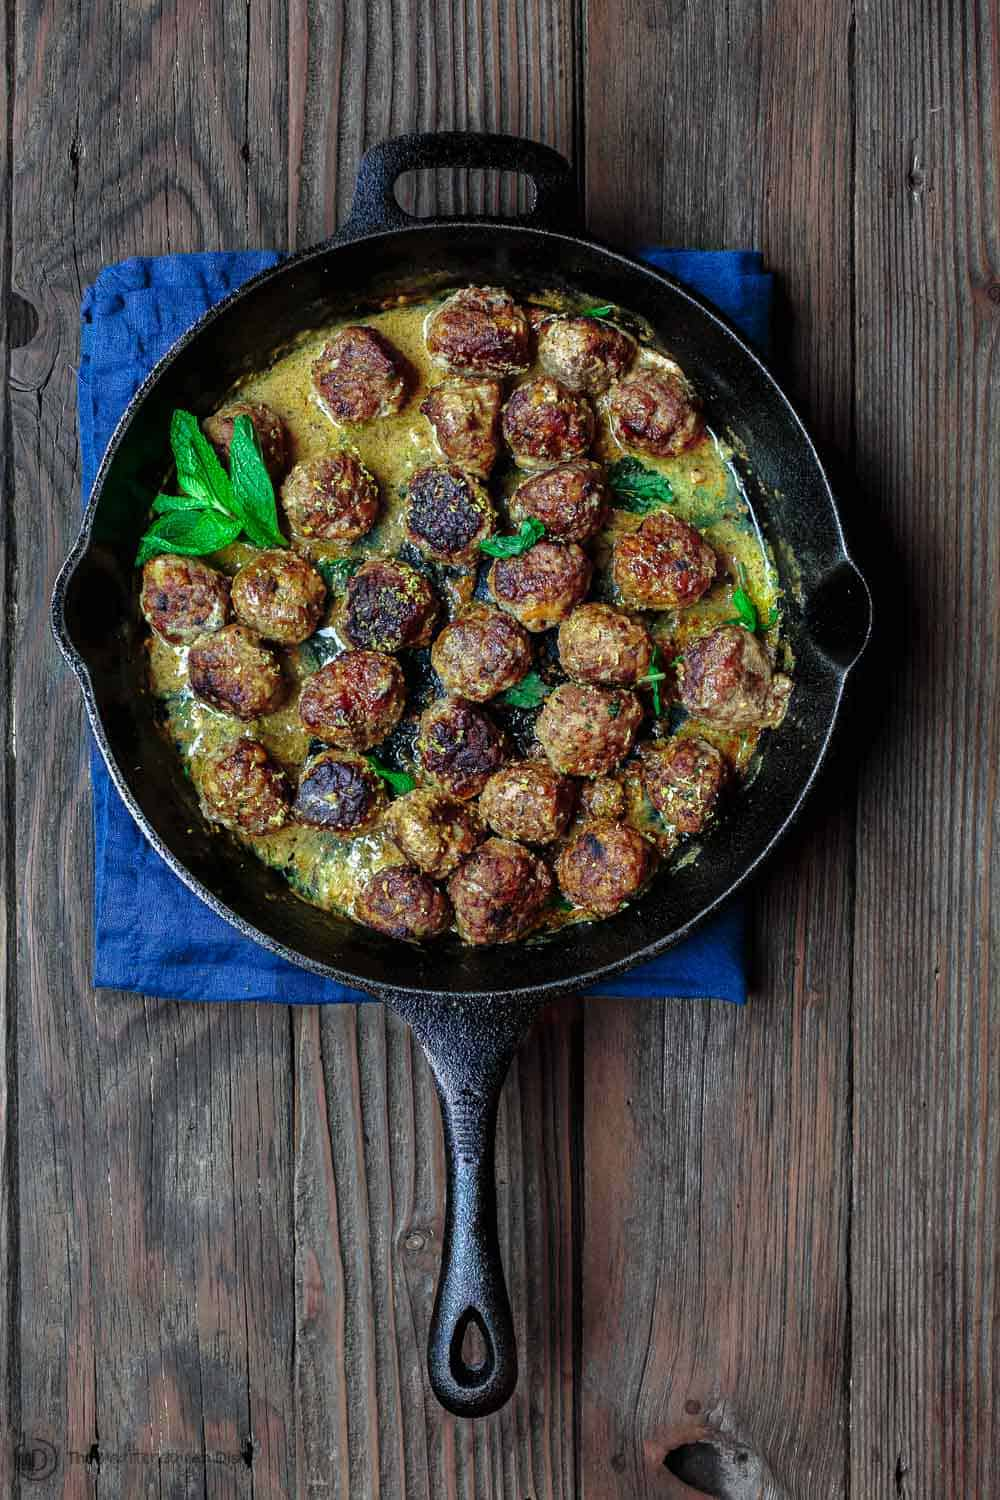 Keftedes Greek Meatballs Recipe. Part of 21 Mediterranean Christmas Brunch Recipes | The Mediterranean Dish. #christmasbrunch #mediterraneanrecipes #brunchrecipes